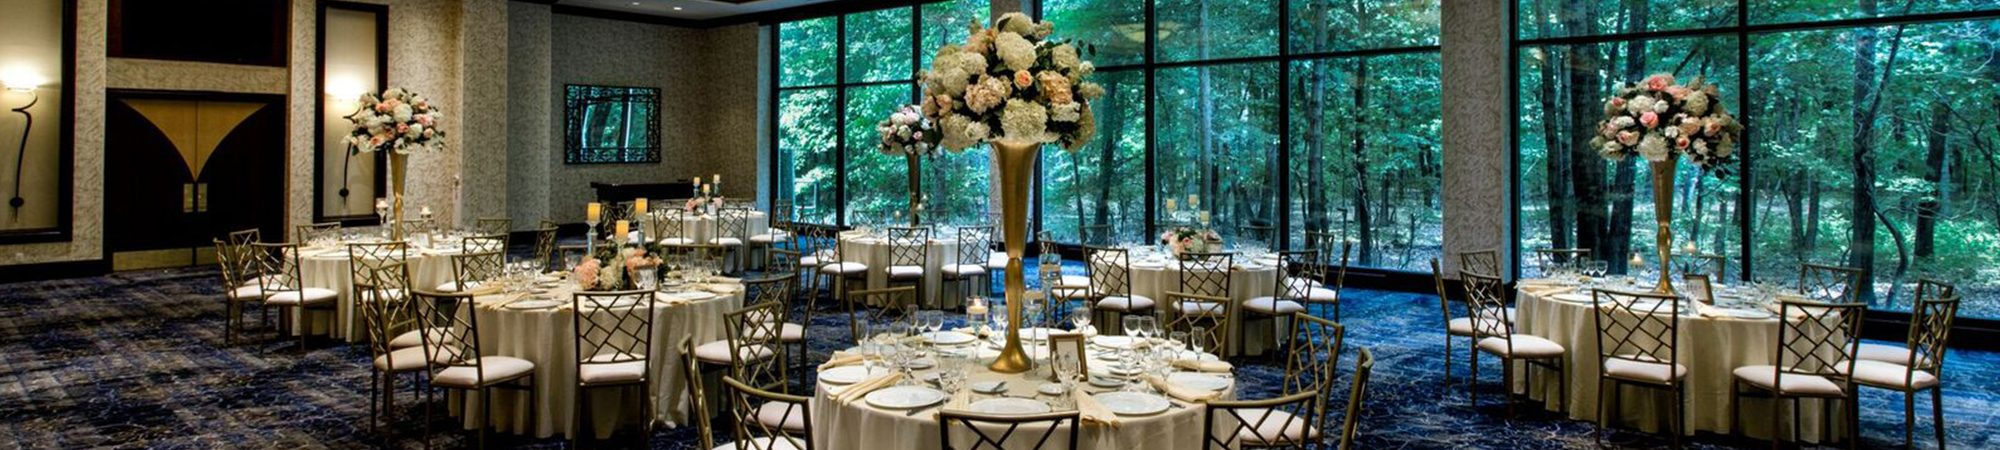 photo of Dining hall with tables and flowers